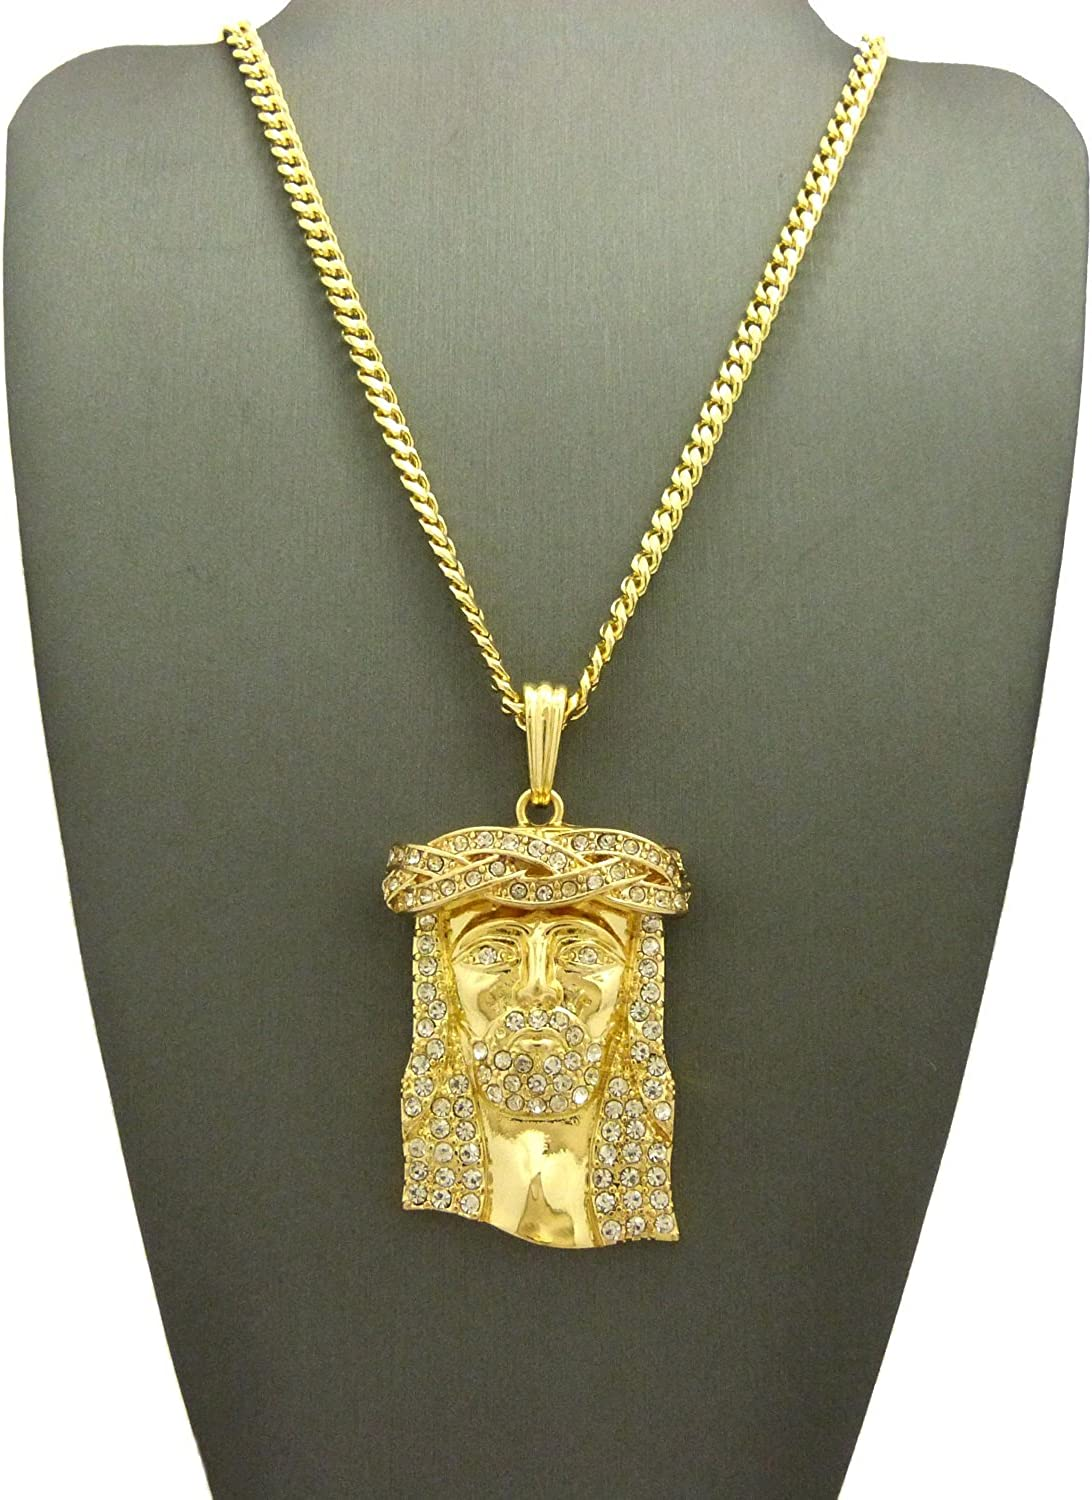 NYFASHION101 Stone Stud Jesus Face Straight Cut Edge Pendant with Gold-Tone Necklace